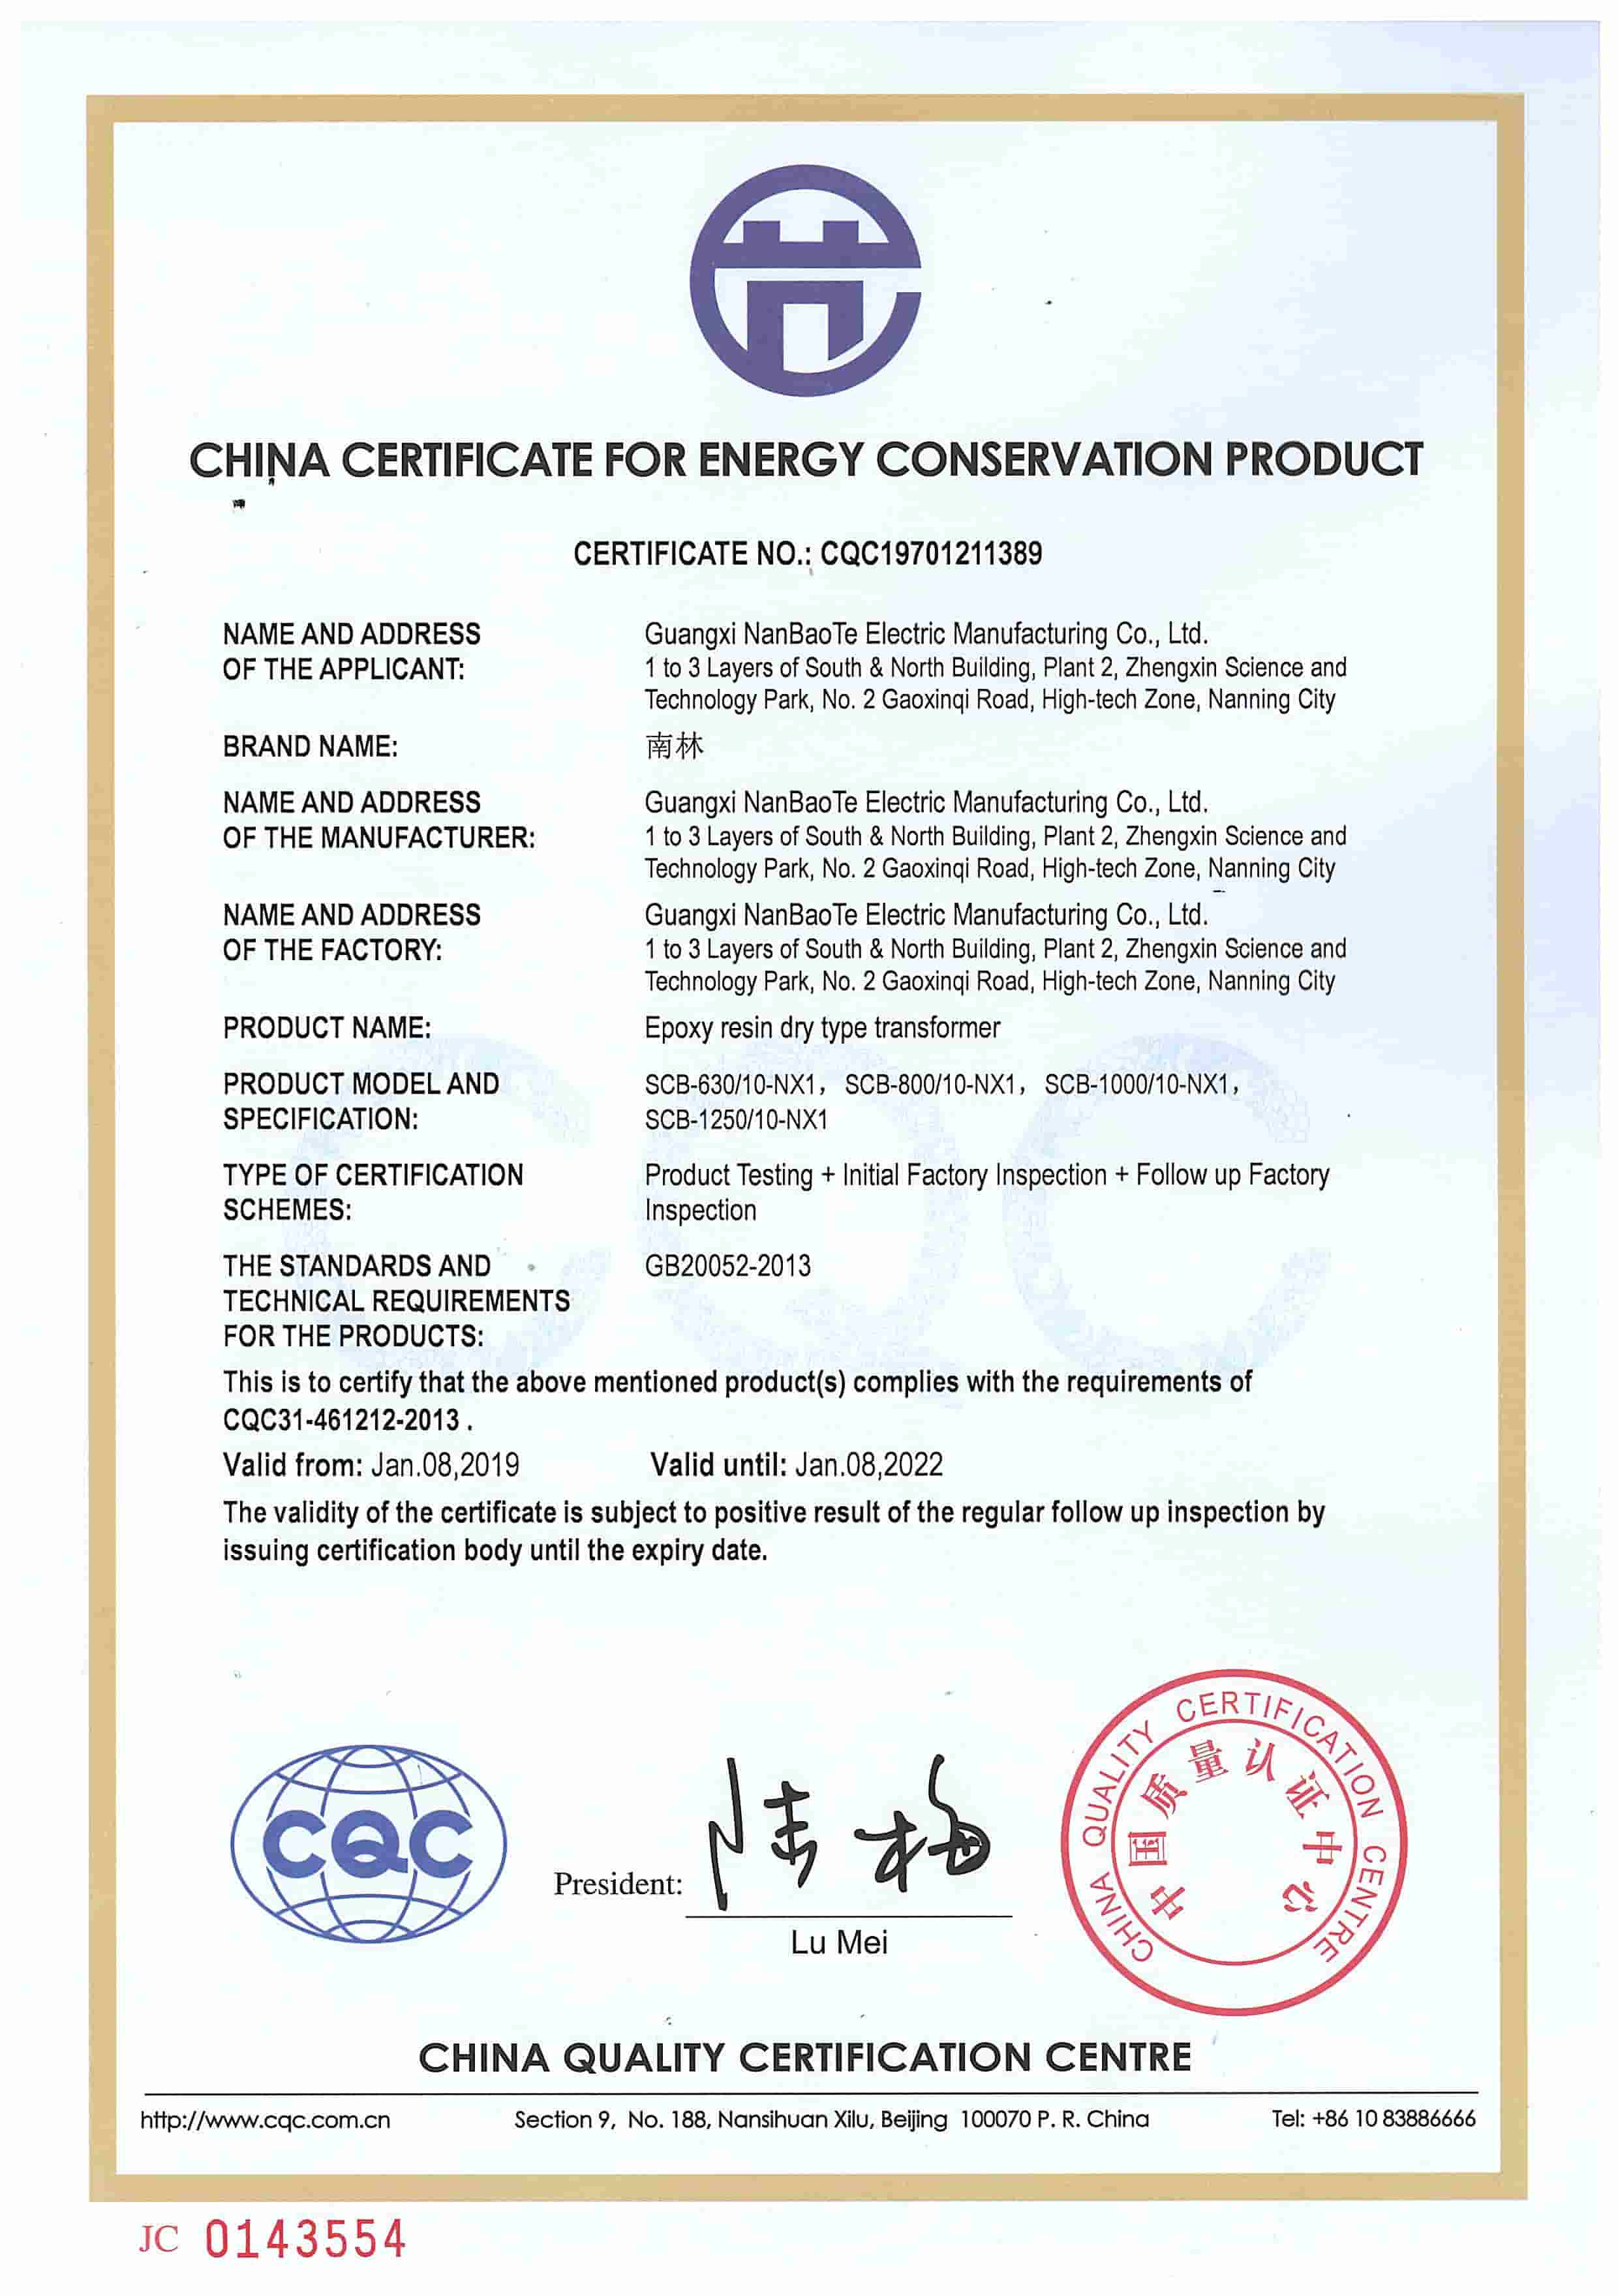 Epoxy Resin Dry Type Transformer Energy Conservation Products Certificate